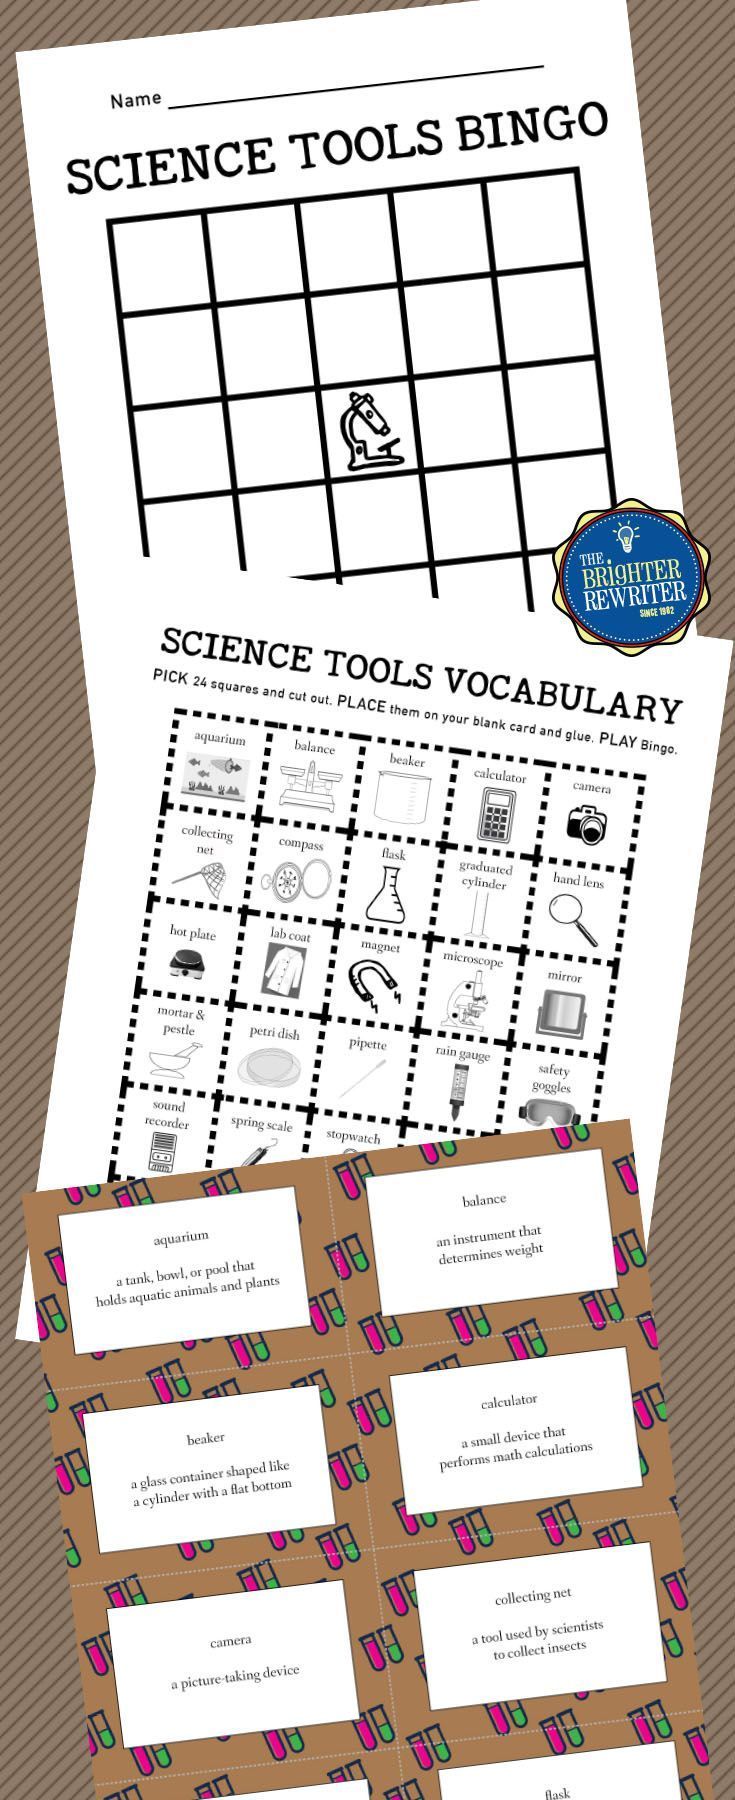 Create-your-own-bingo-card game reviews 30 science lab equipment tools.